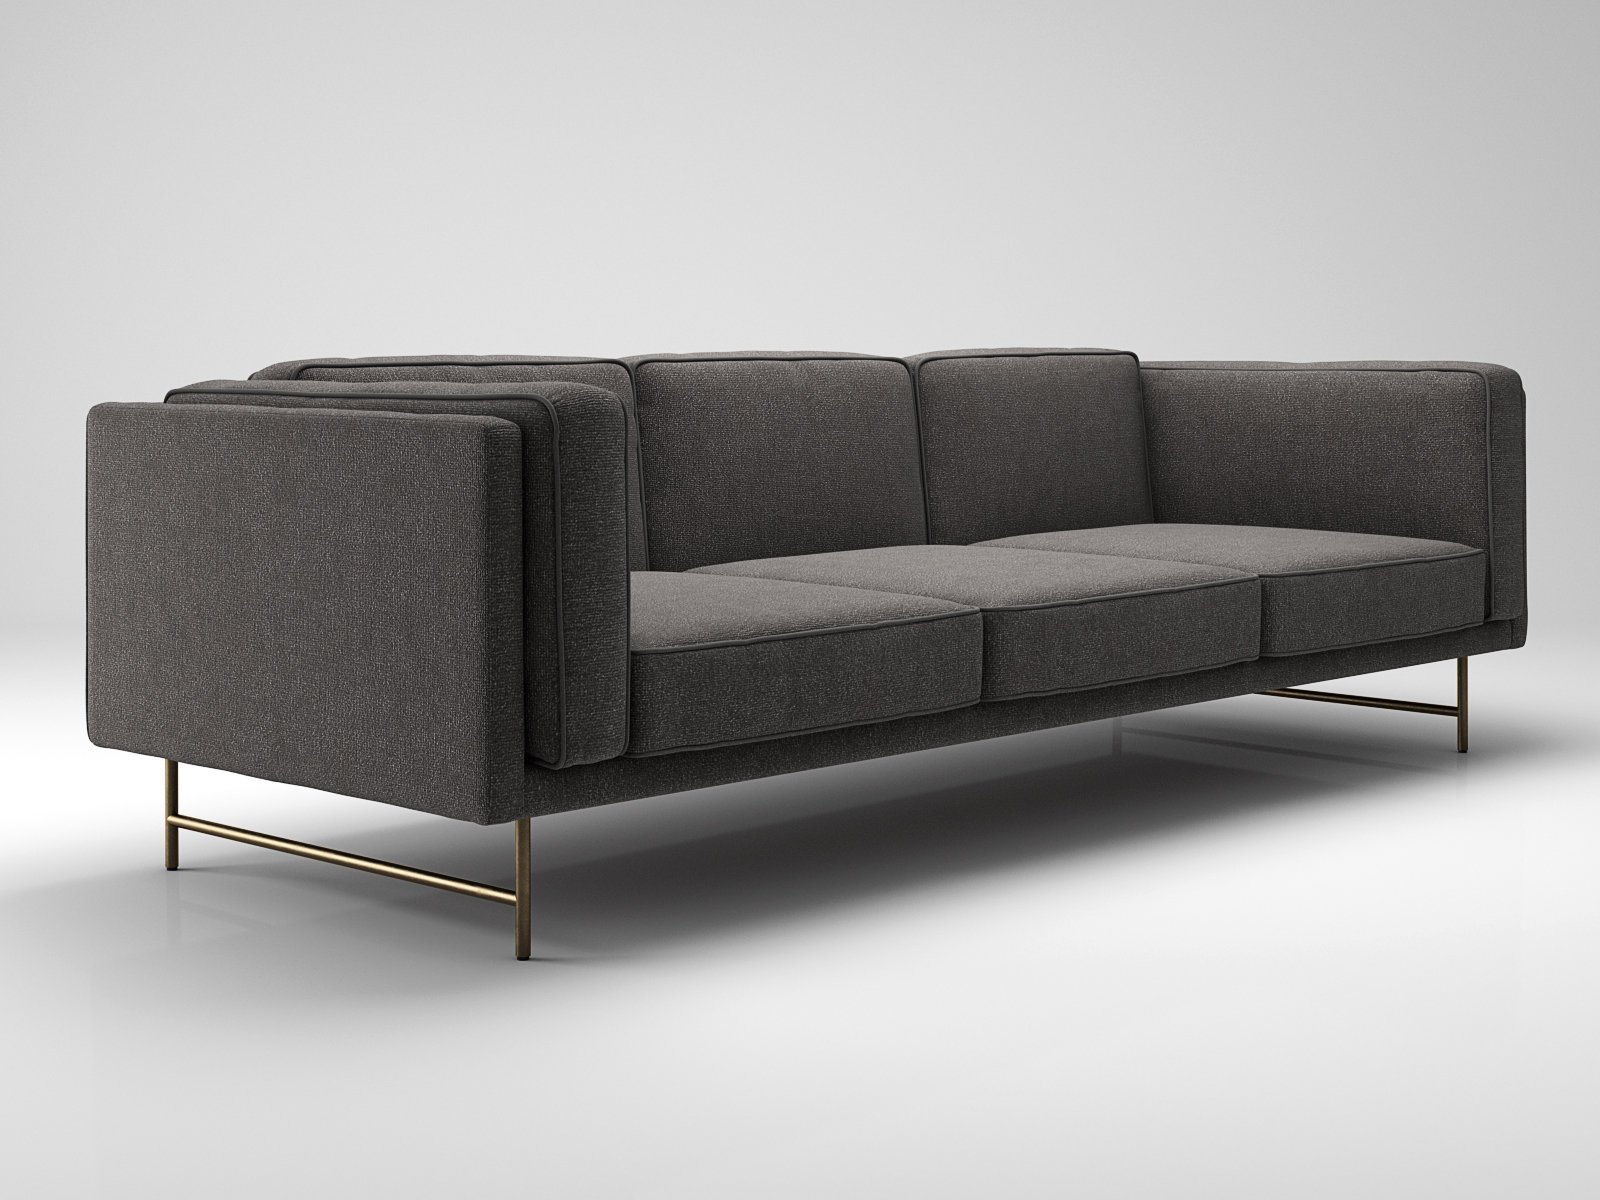 blu dot bank sofa modern beds sydney 3 seater modello 3d